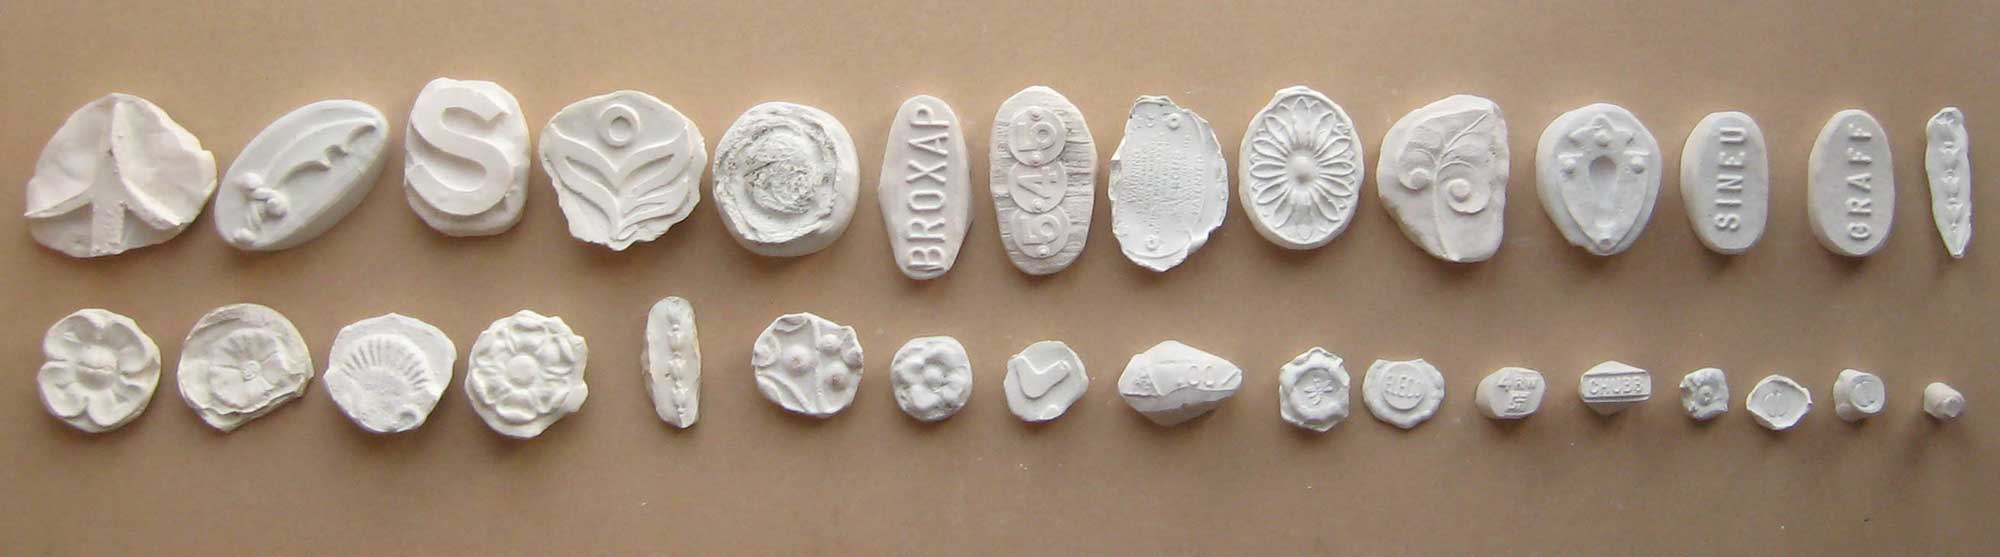 fossils-of-barking